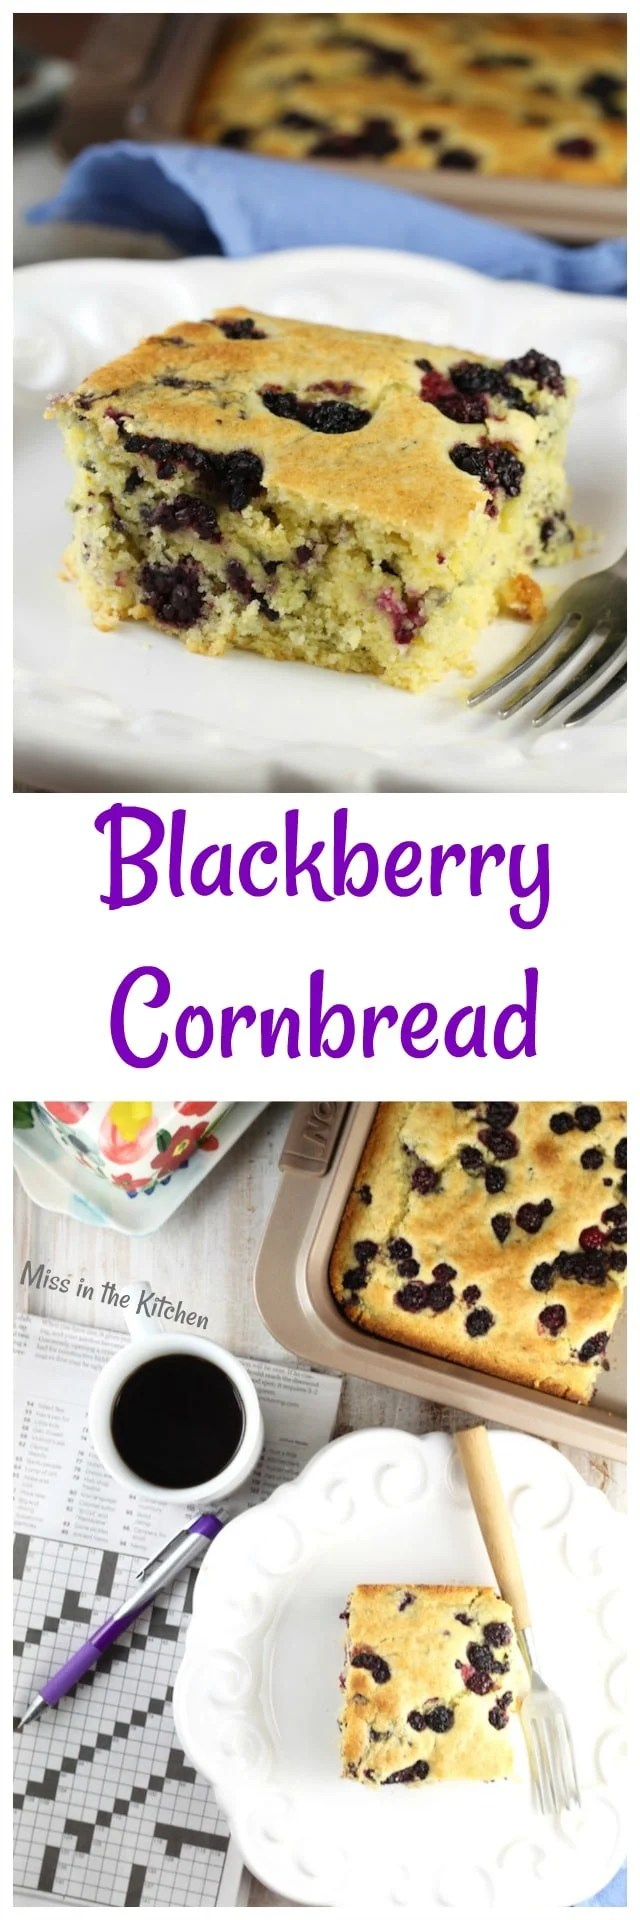 Blackberry Cornbread Recipe ~ a sweet breakfast treat for any day of the week. From MissintheKitchen.com